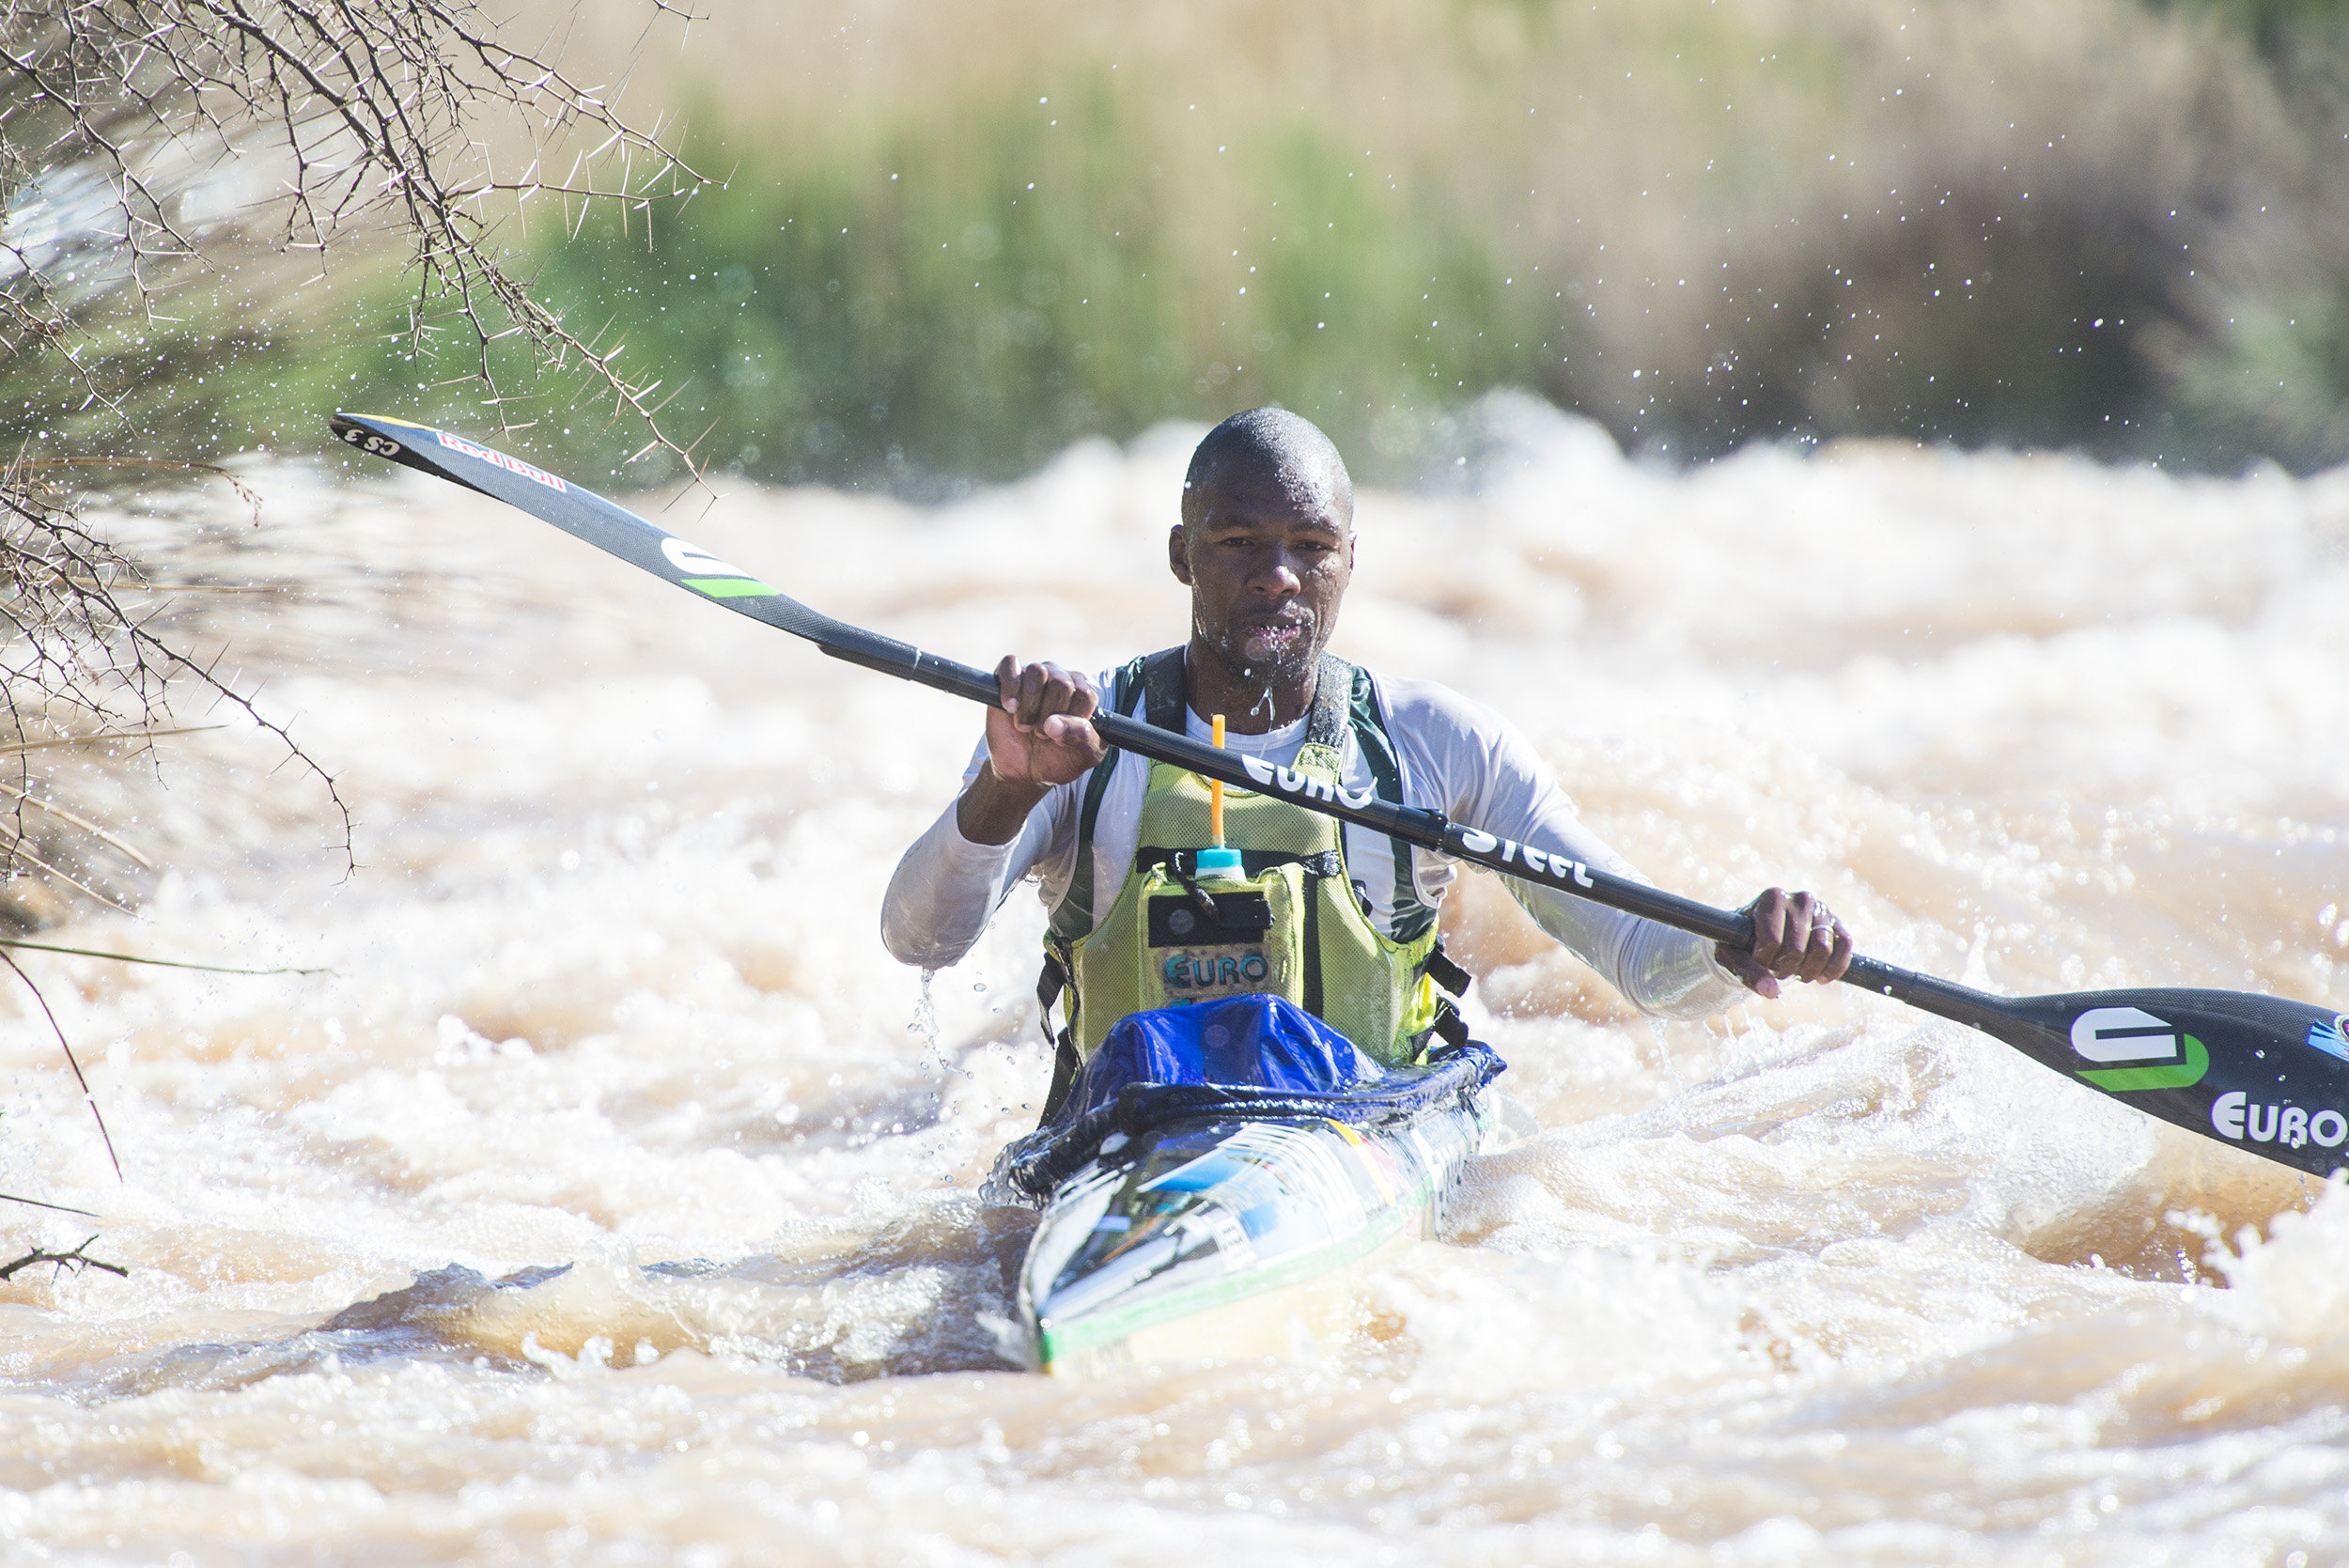 Khwela ups paddling skills in bid to break into Drak Challenge top 10